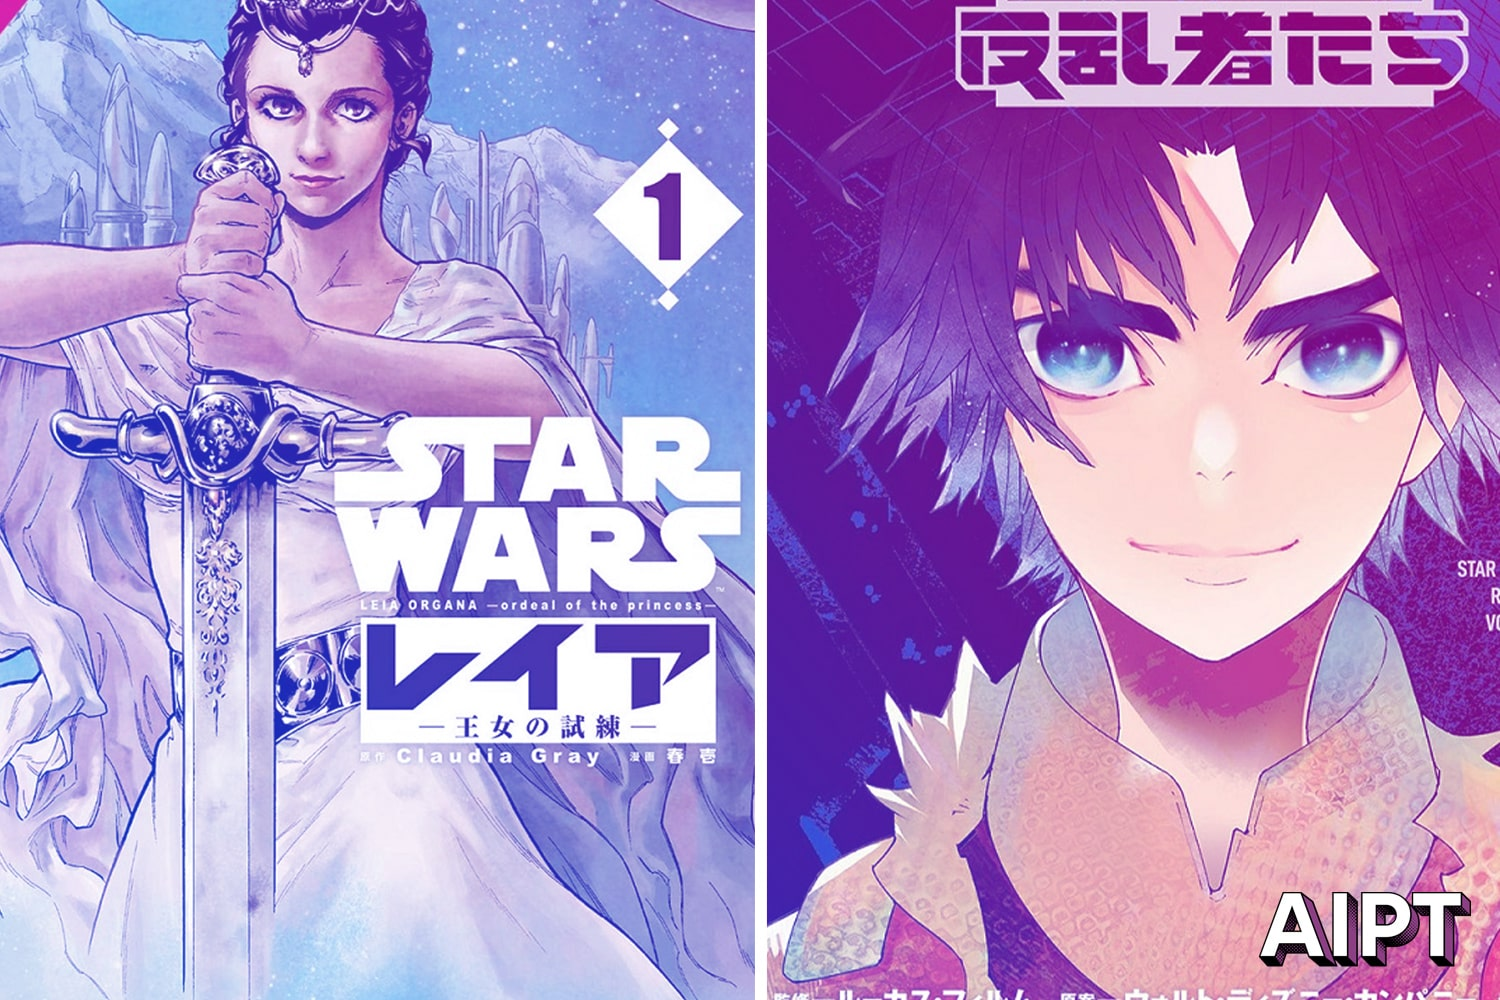 Both ongoing Star Wars series will be available in print and digital this Fall.